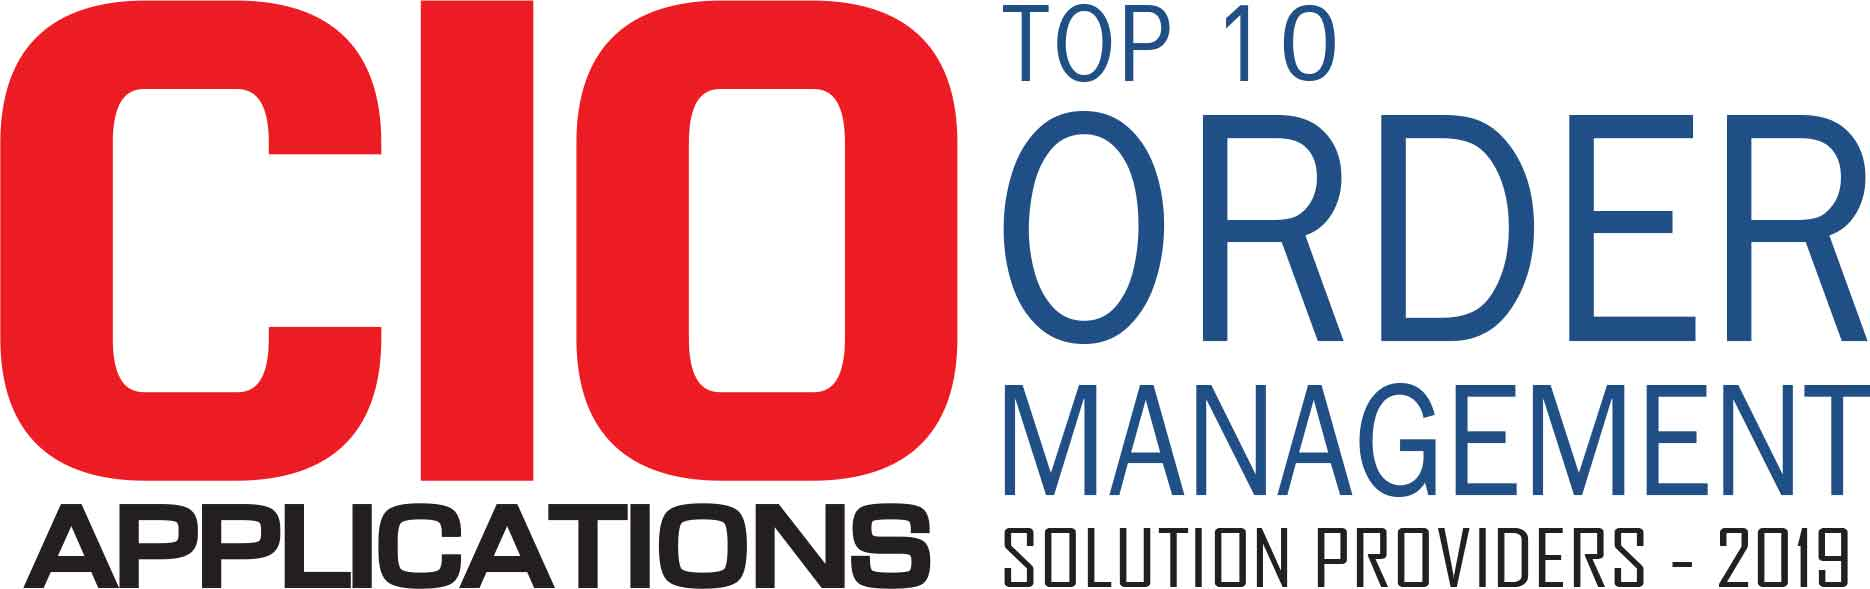 Top 10 Order Management Solution Companies - 2019